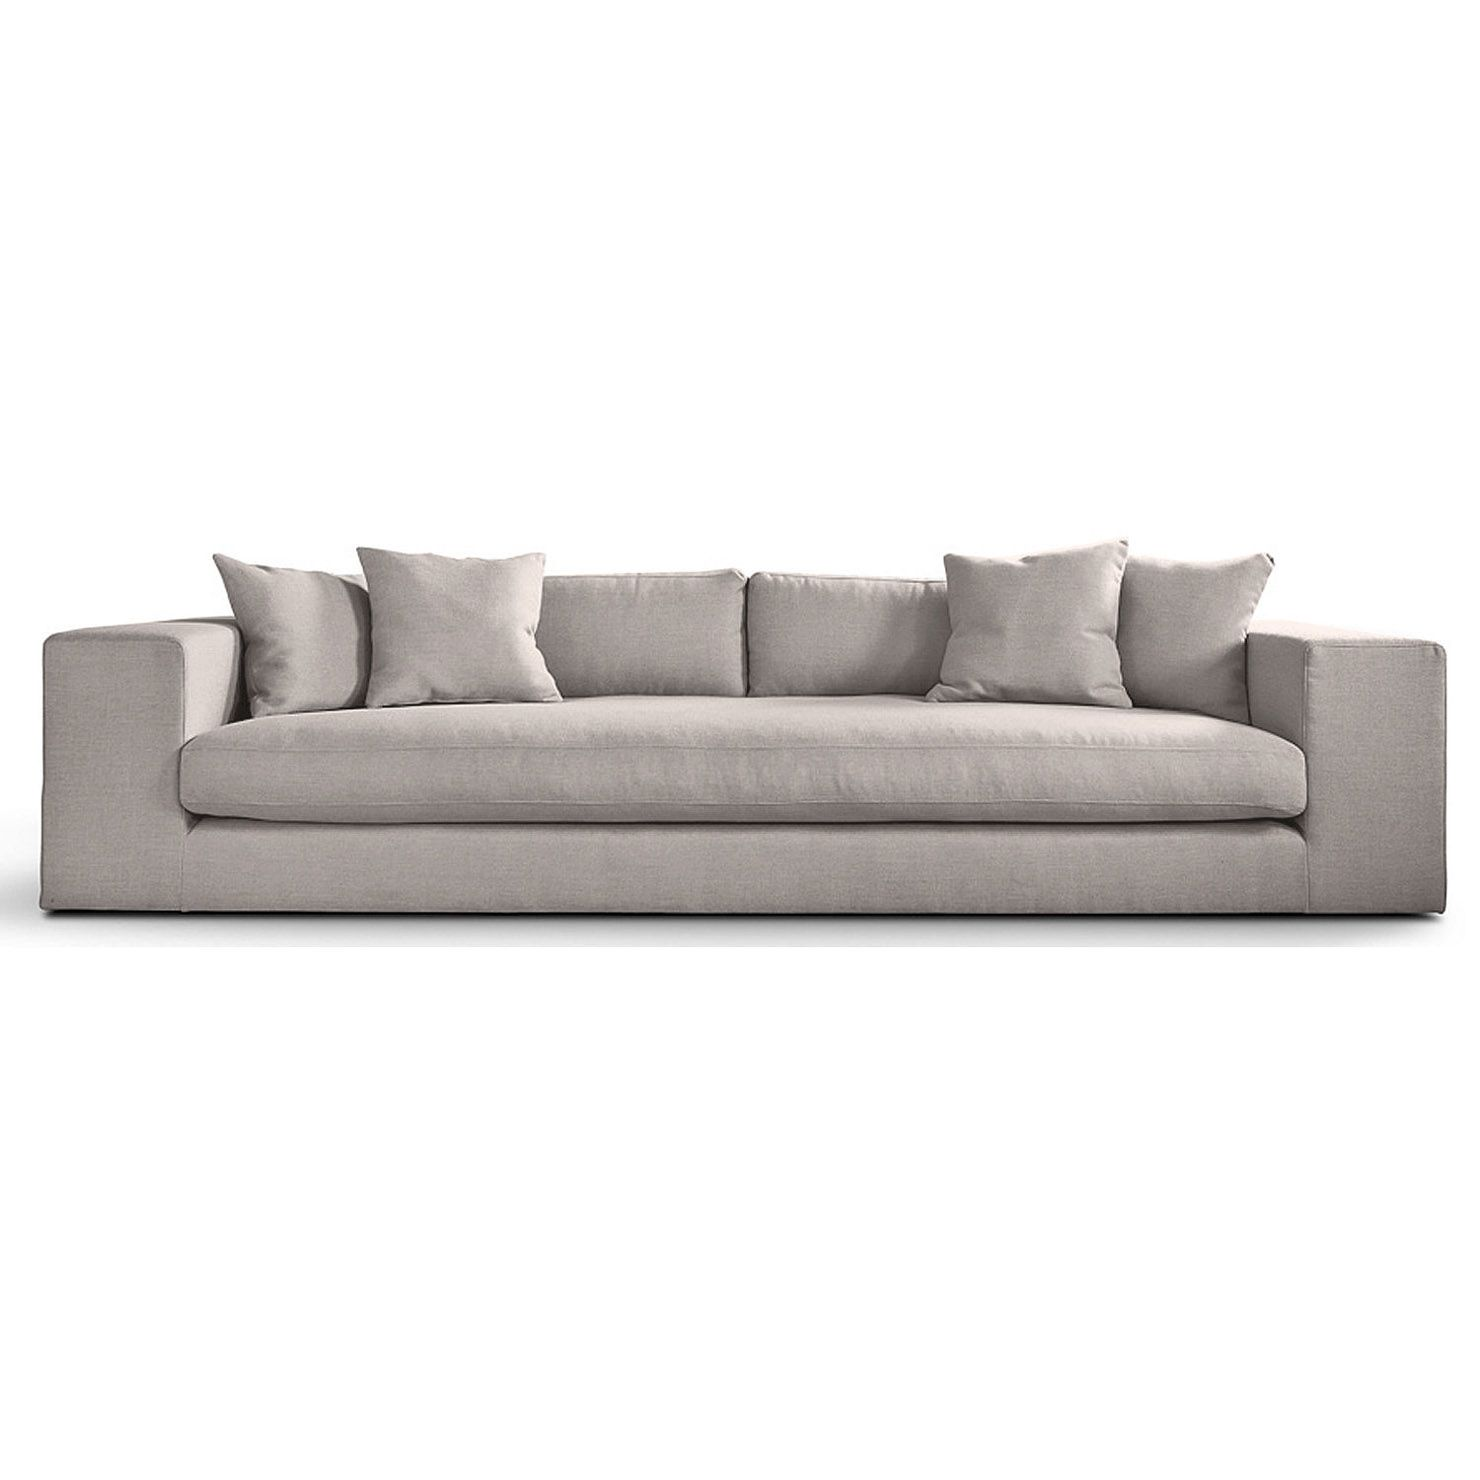 Barlow Fabric 4 Seater Sofa Dove Achica Luxury Sofa Sofa